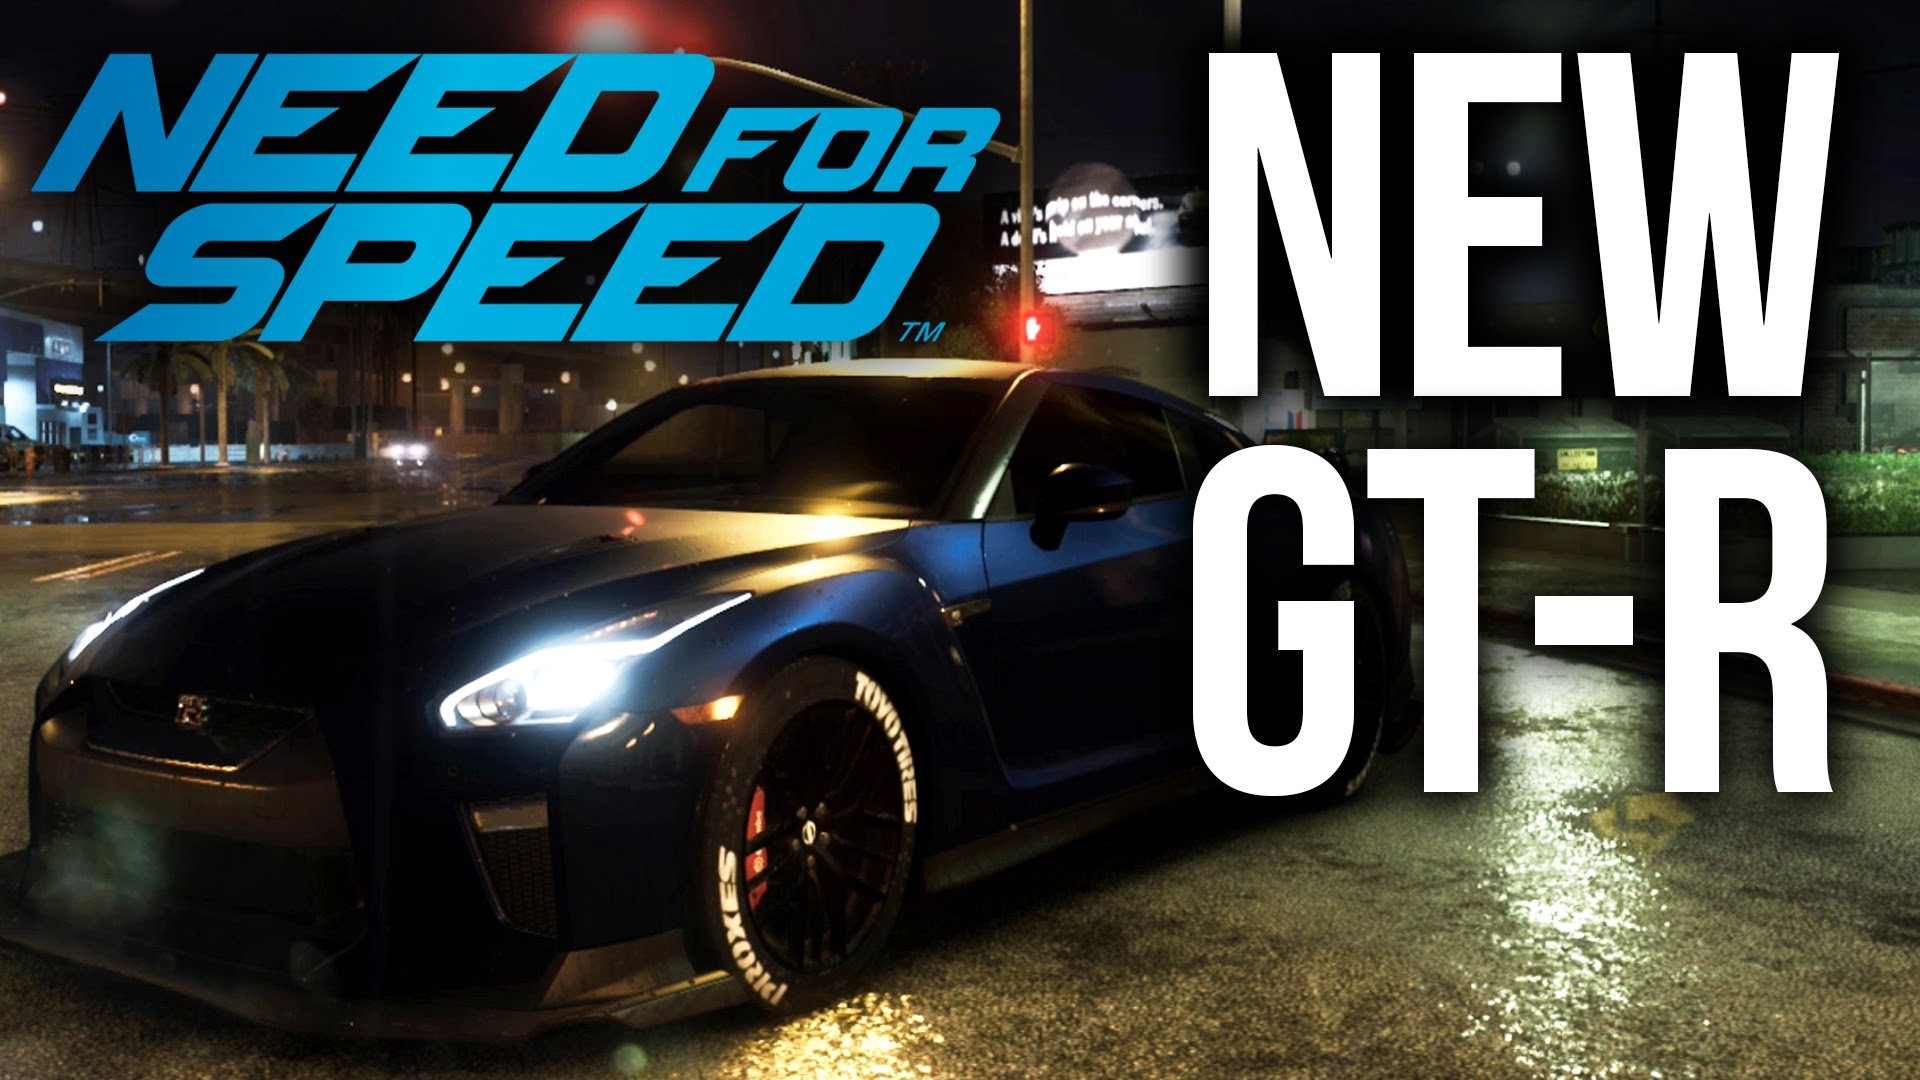 Need For Speed 2017 Xbox One Torrent Download Kevinmcalder Medium